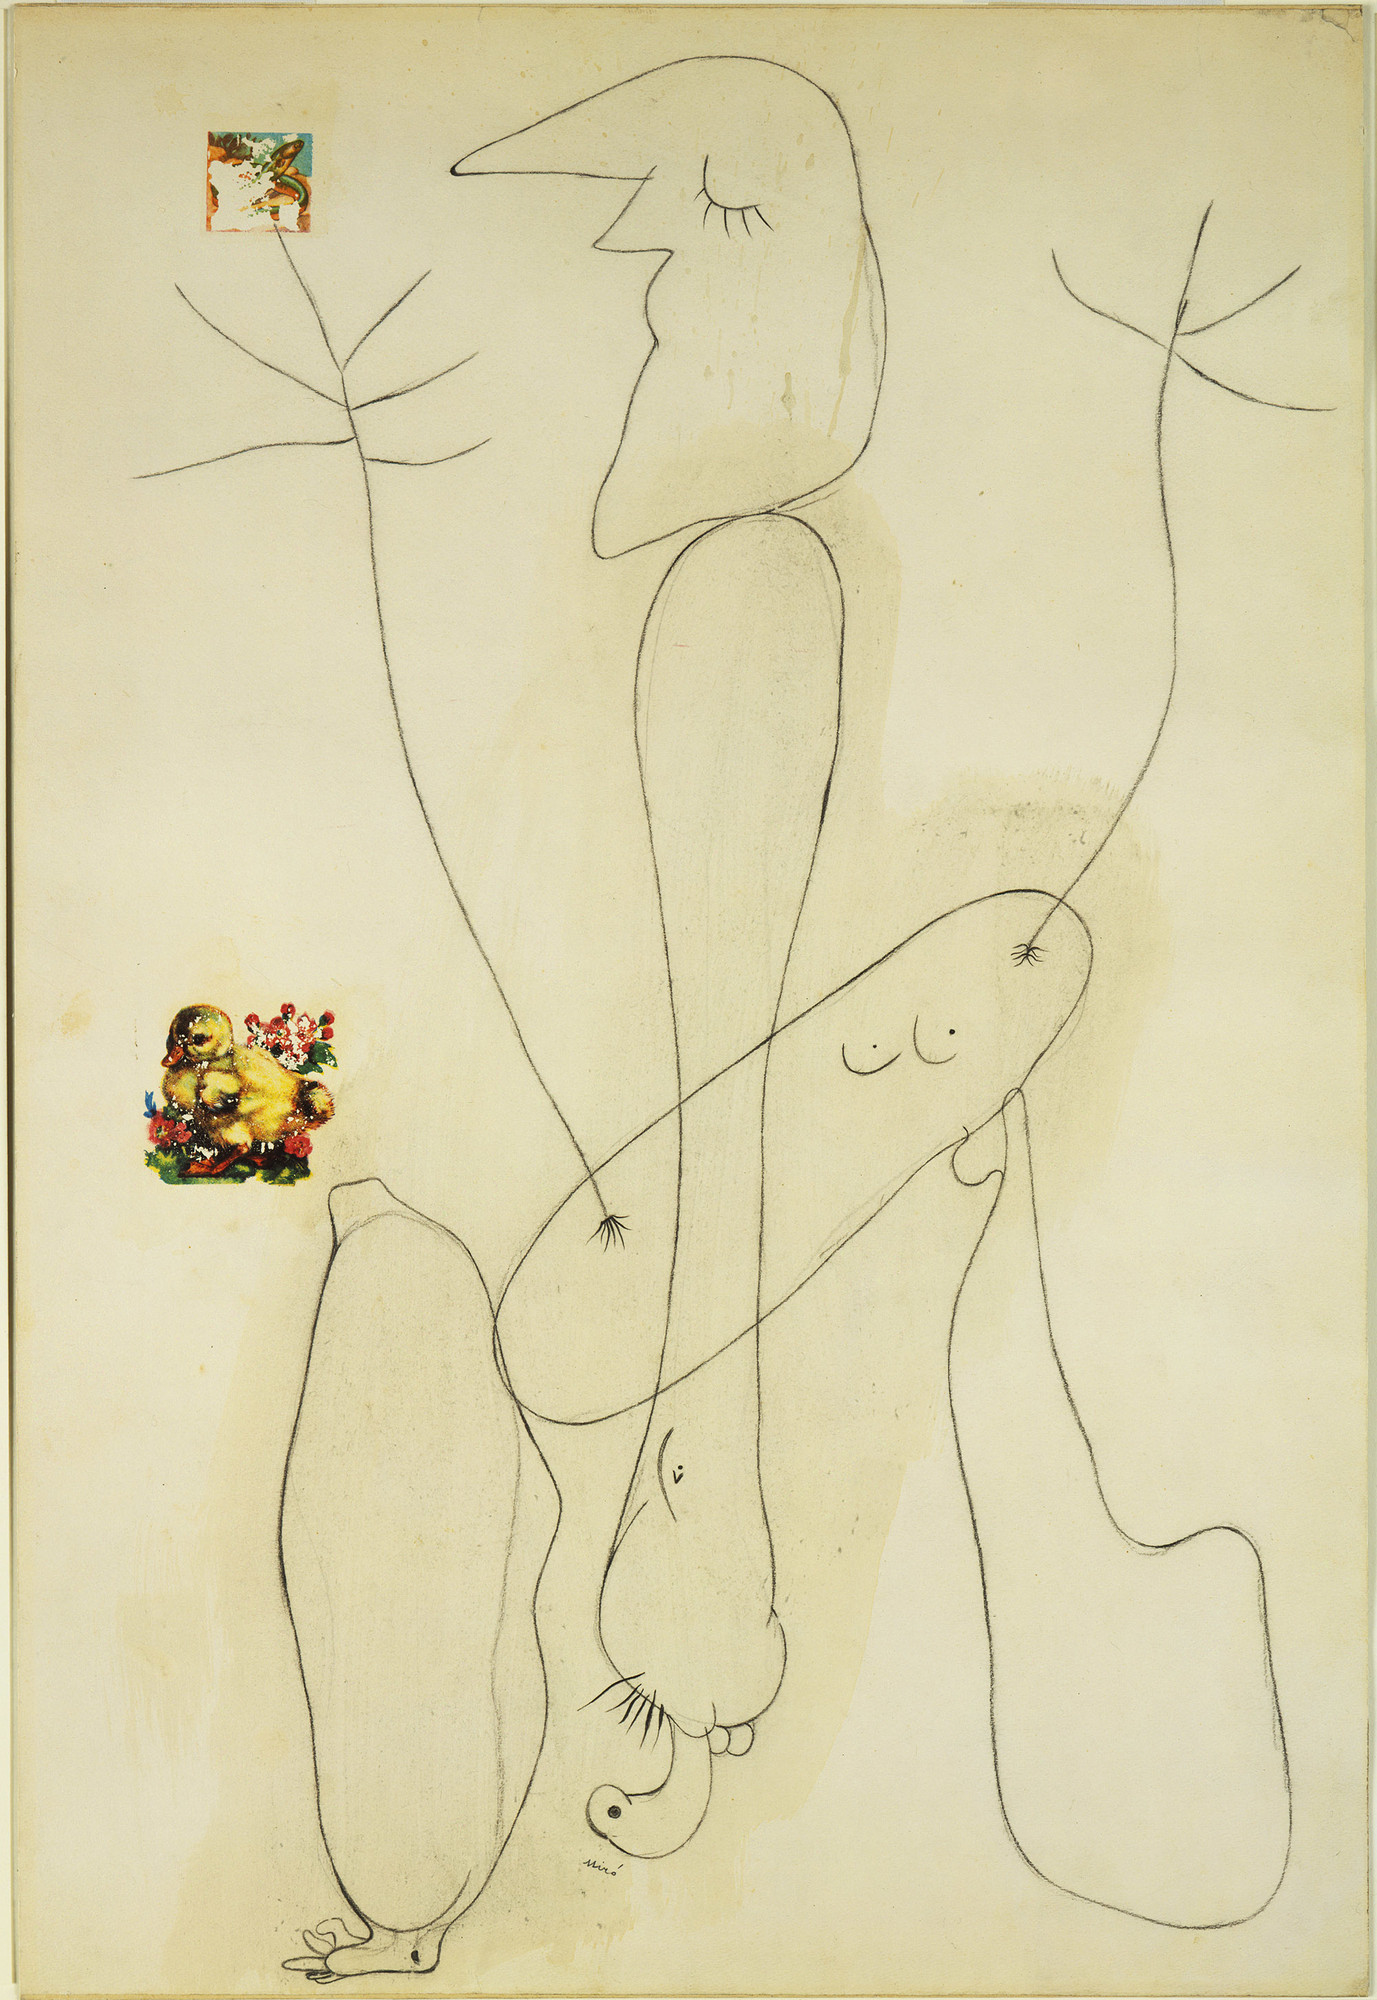 Joan Miró. Drawing-Collage. 1936. Crayon and decals on paper, 25 1⁄4 × 17 1/8″ (64 × 43.3 cm). The Museum of Modern Art. Gift of Nelson A. Rockefeller. © 2006 Successió Miró/Artists Rights Society (ARS), New York/ADAGP, Paris